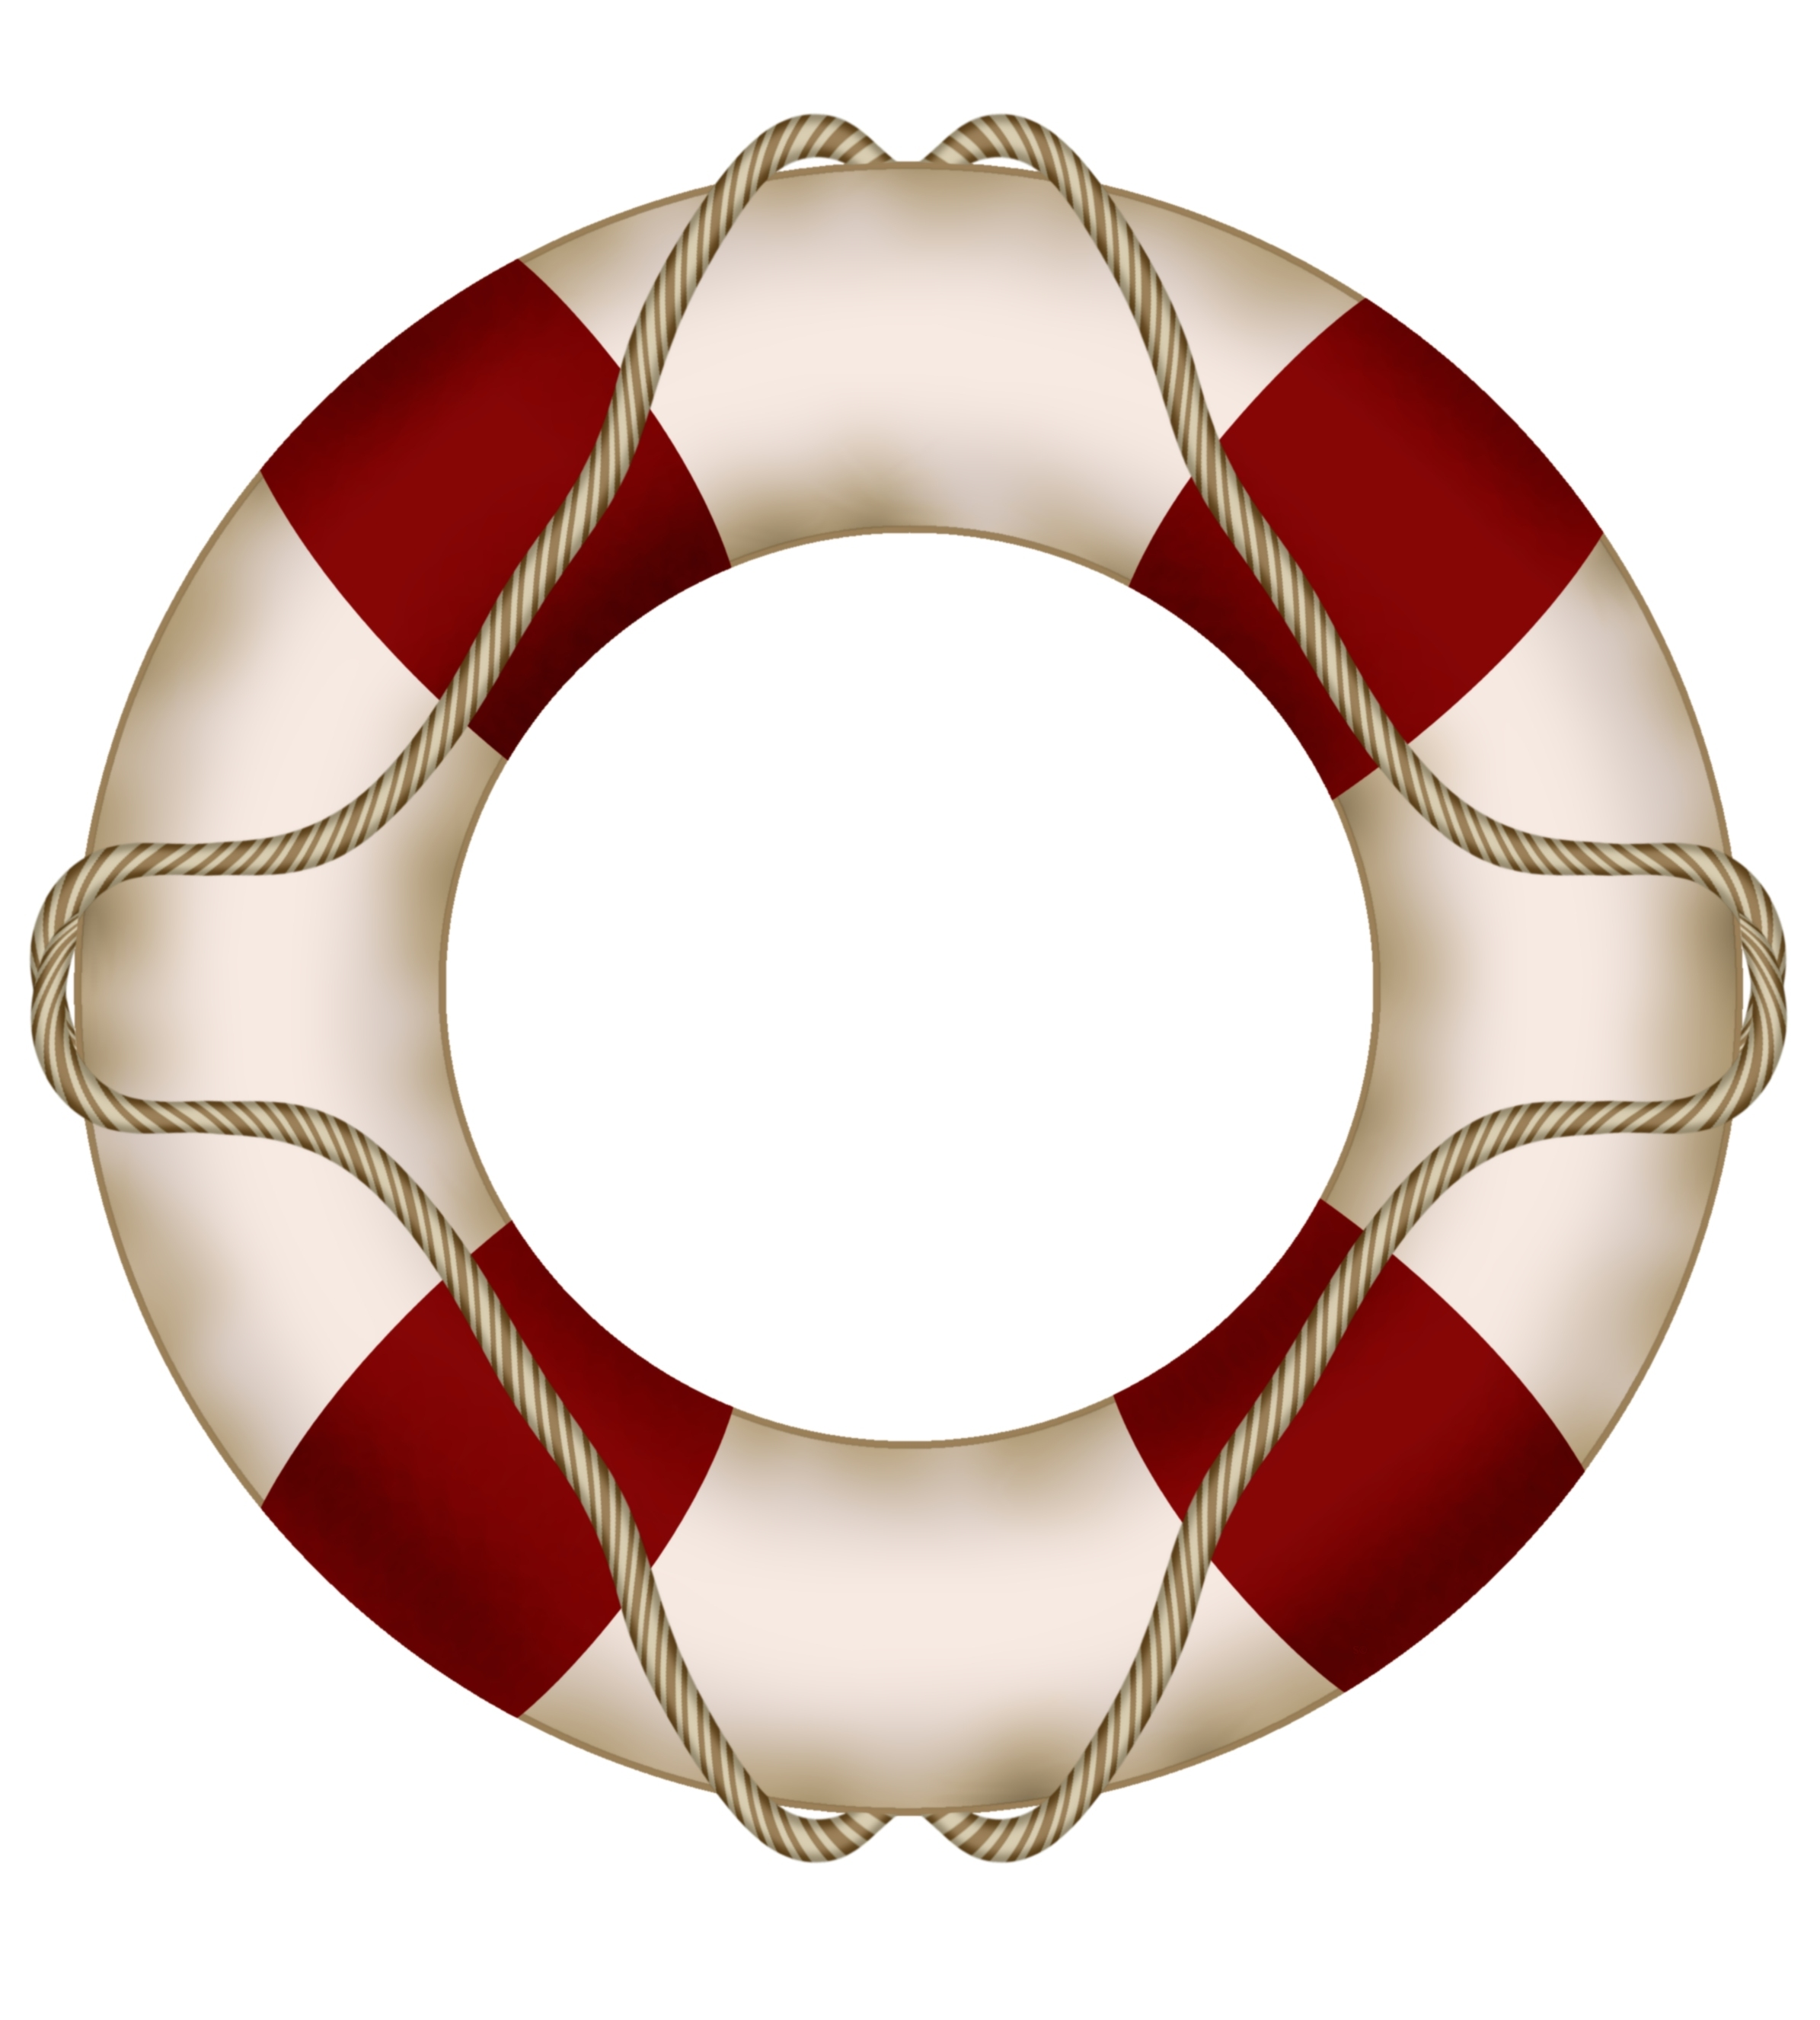 Ring clipart rescue #7